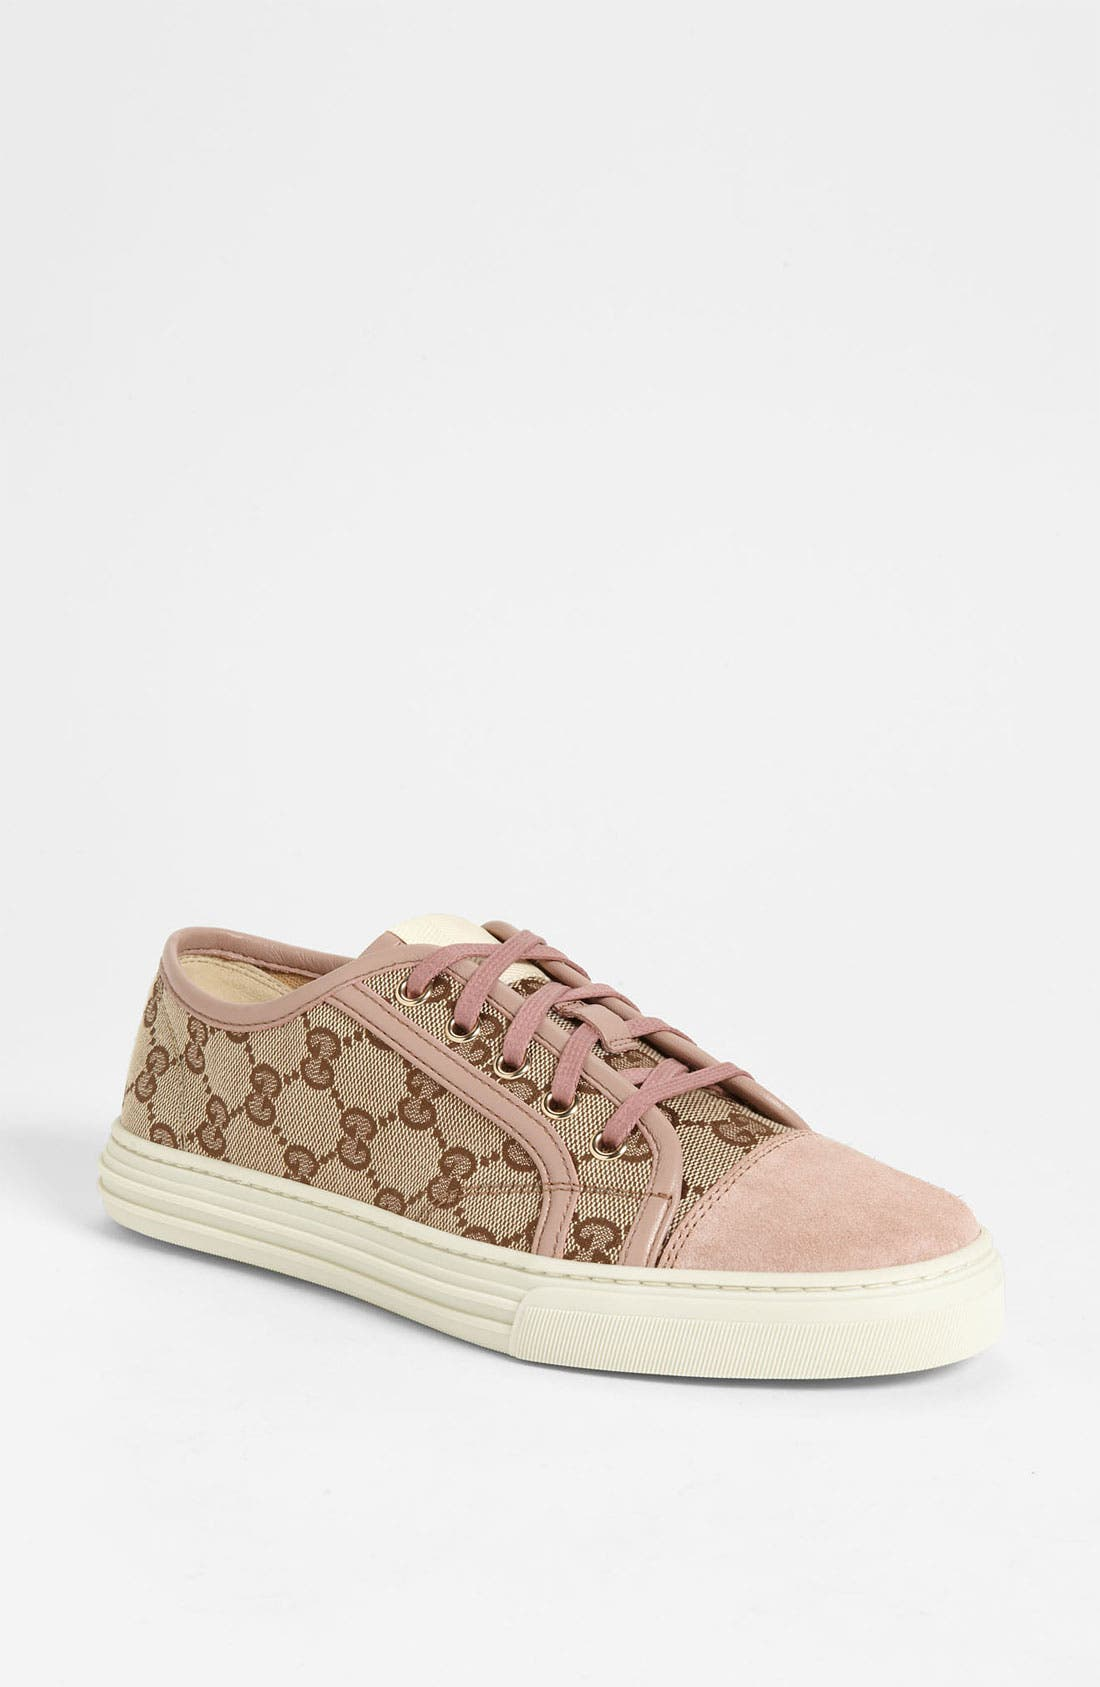 Main Image - Gucci 'California Low' Sneaker